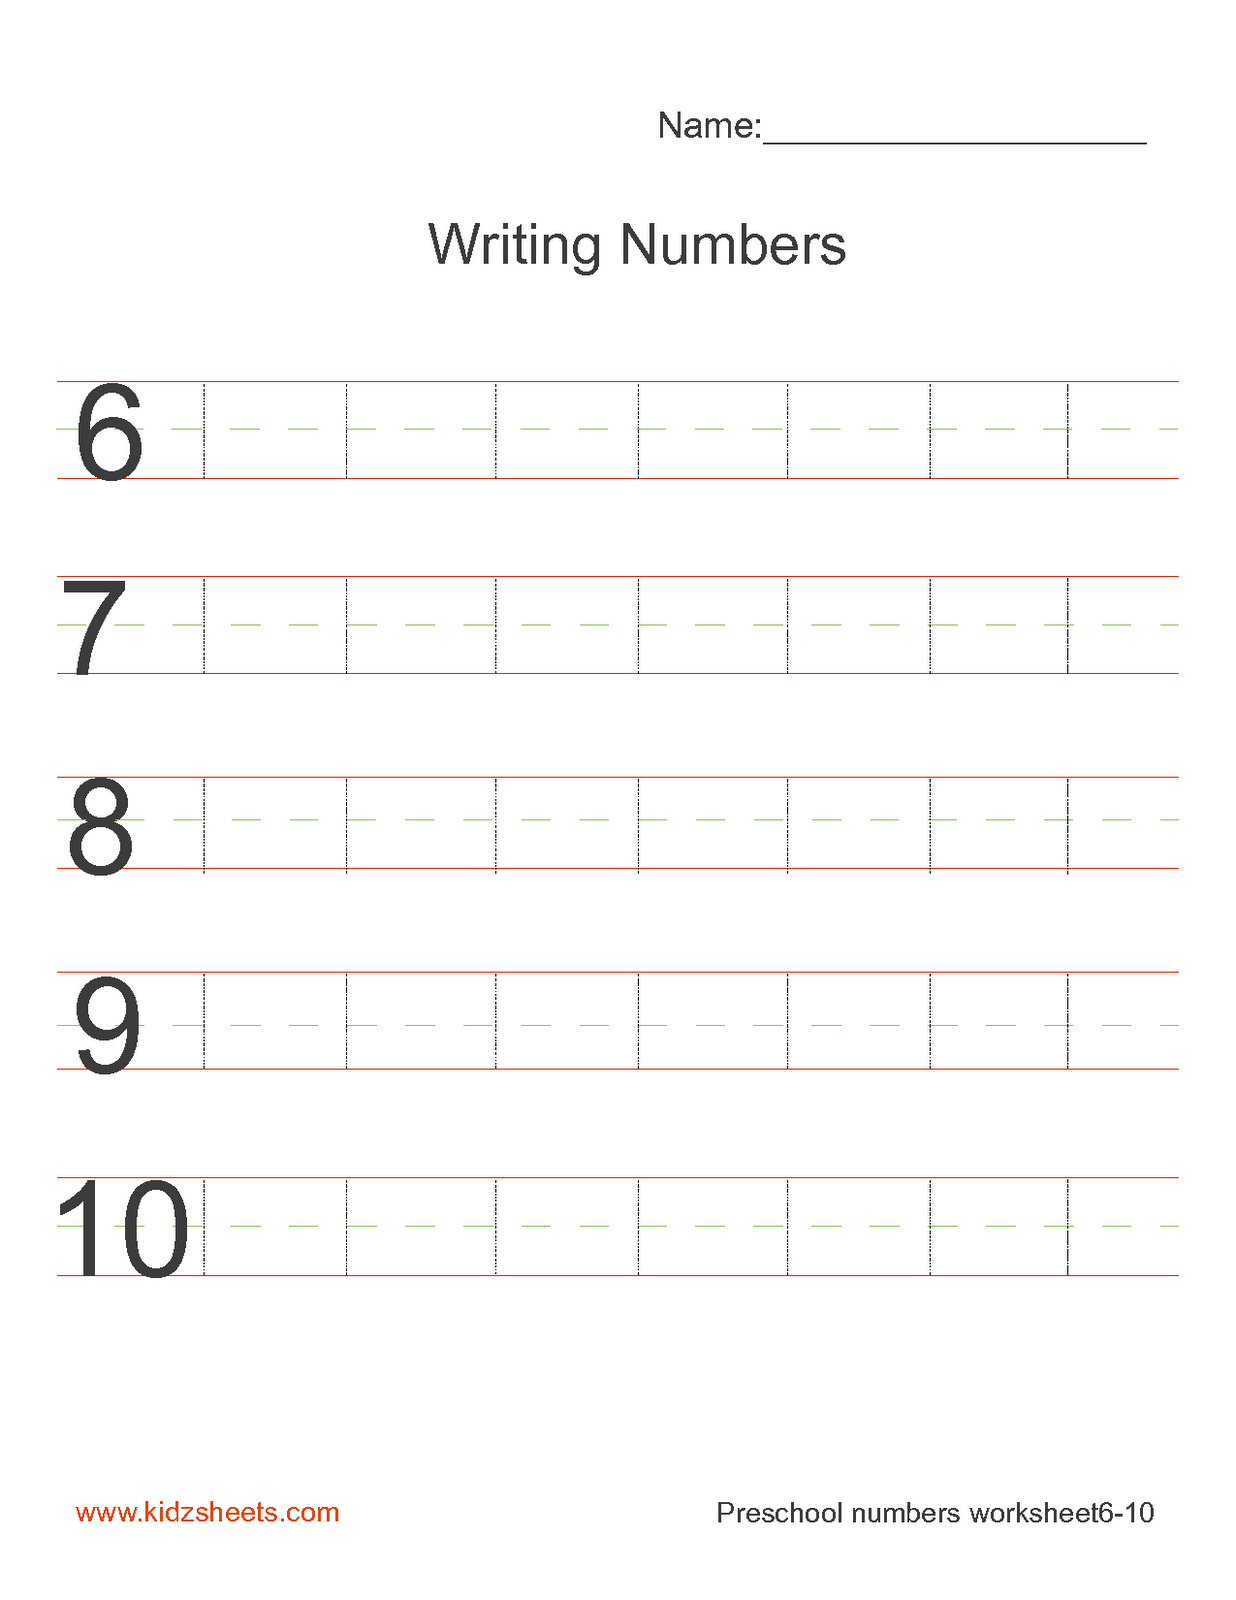 Kidz Worksheets Preschool Writing Numbers Worksheet2